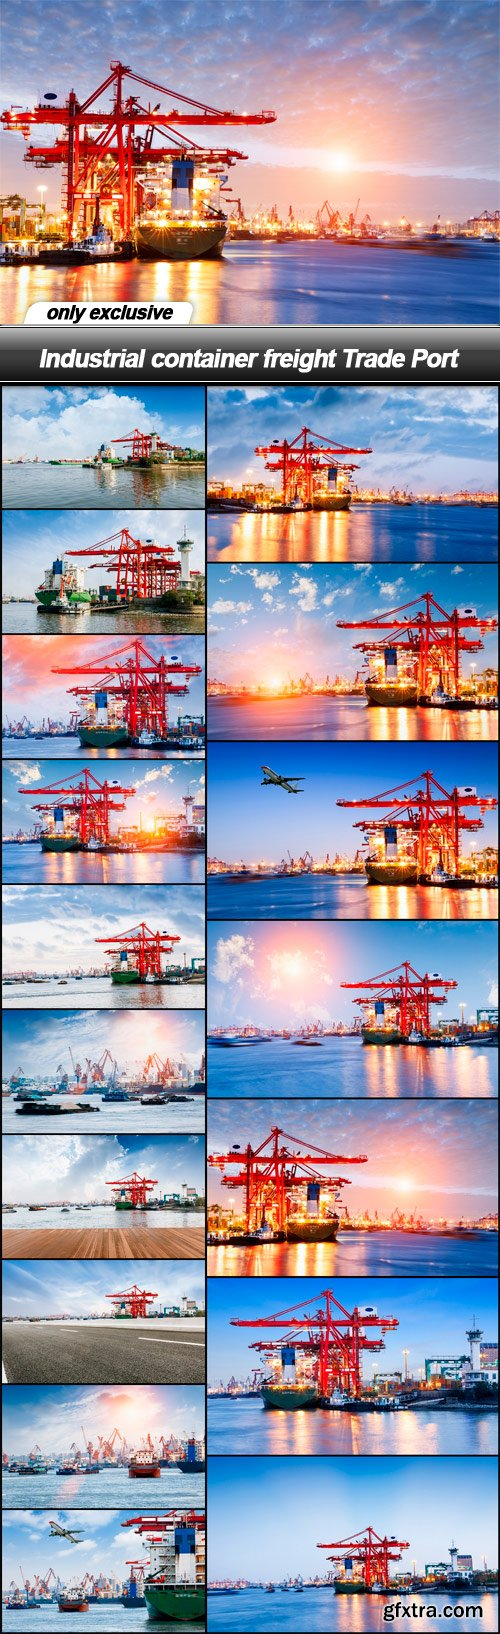 Industrial container freight Trade Port - 17 UHQ JPEG